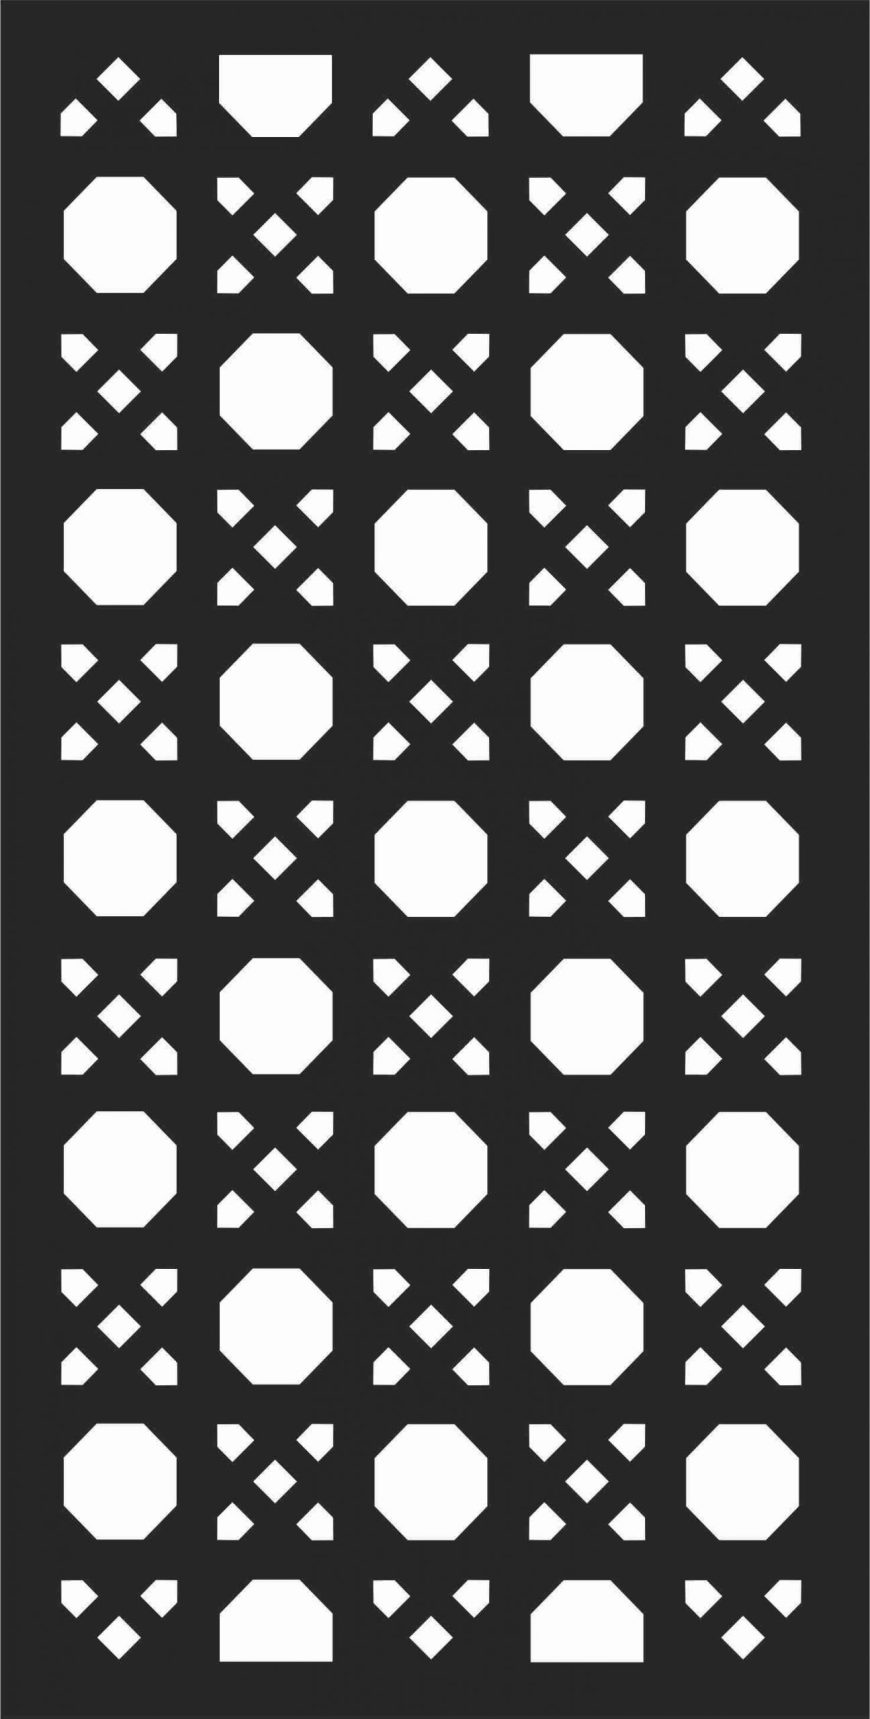 Decorative Screen Patterns For Laser Cutting 186 Free DXF File